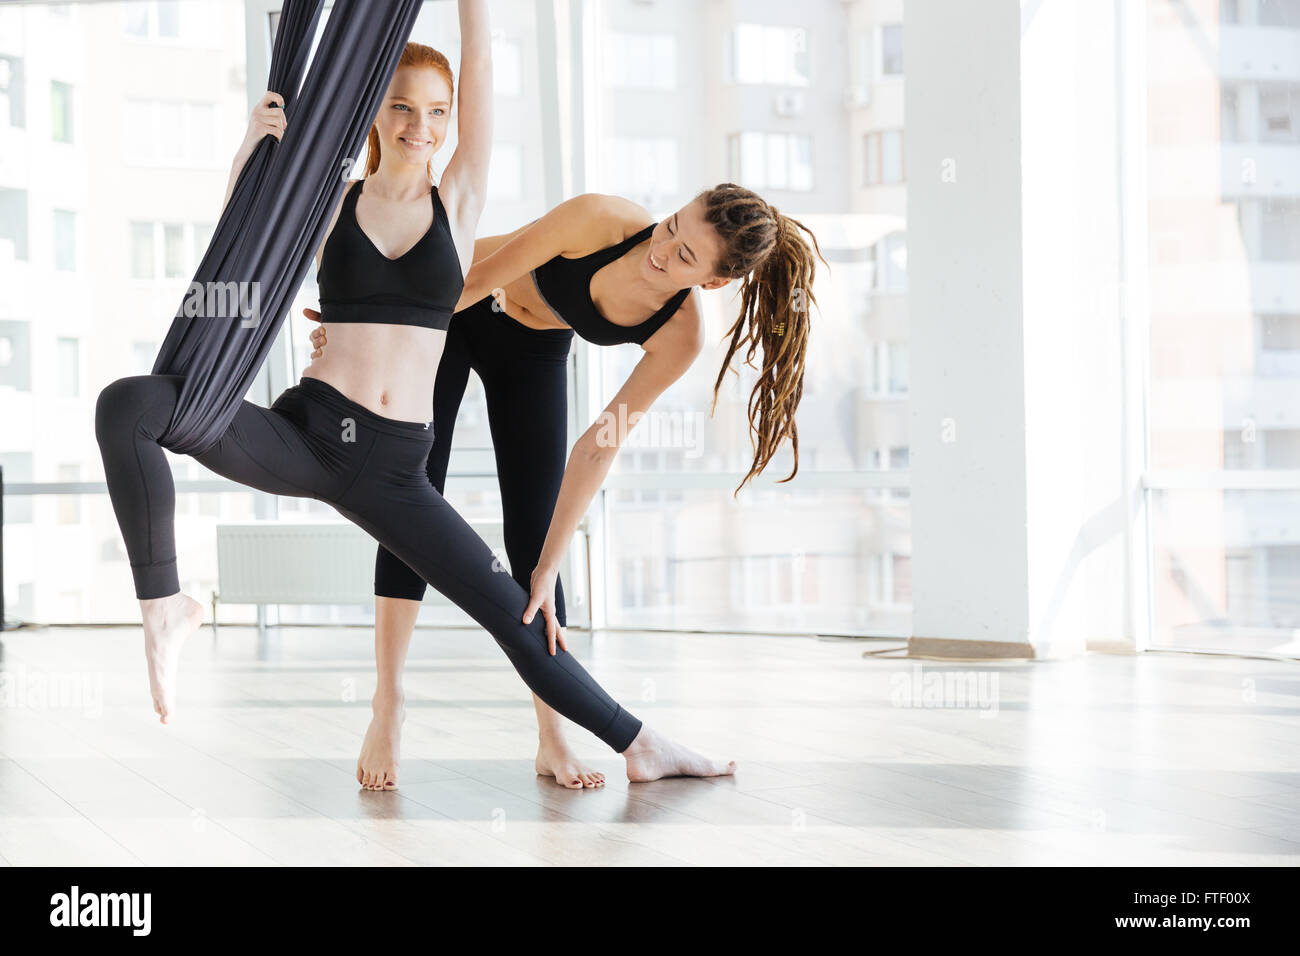 Happy pretty young woman doing aerial yoga with trainer in studio - Stock Image